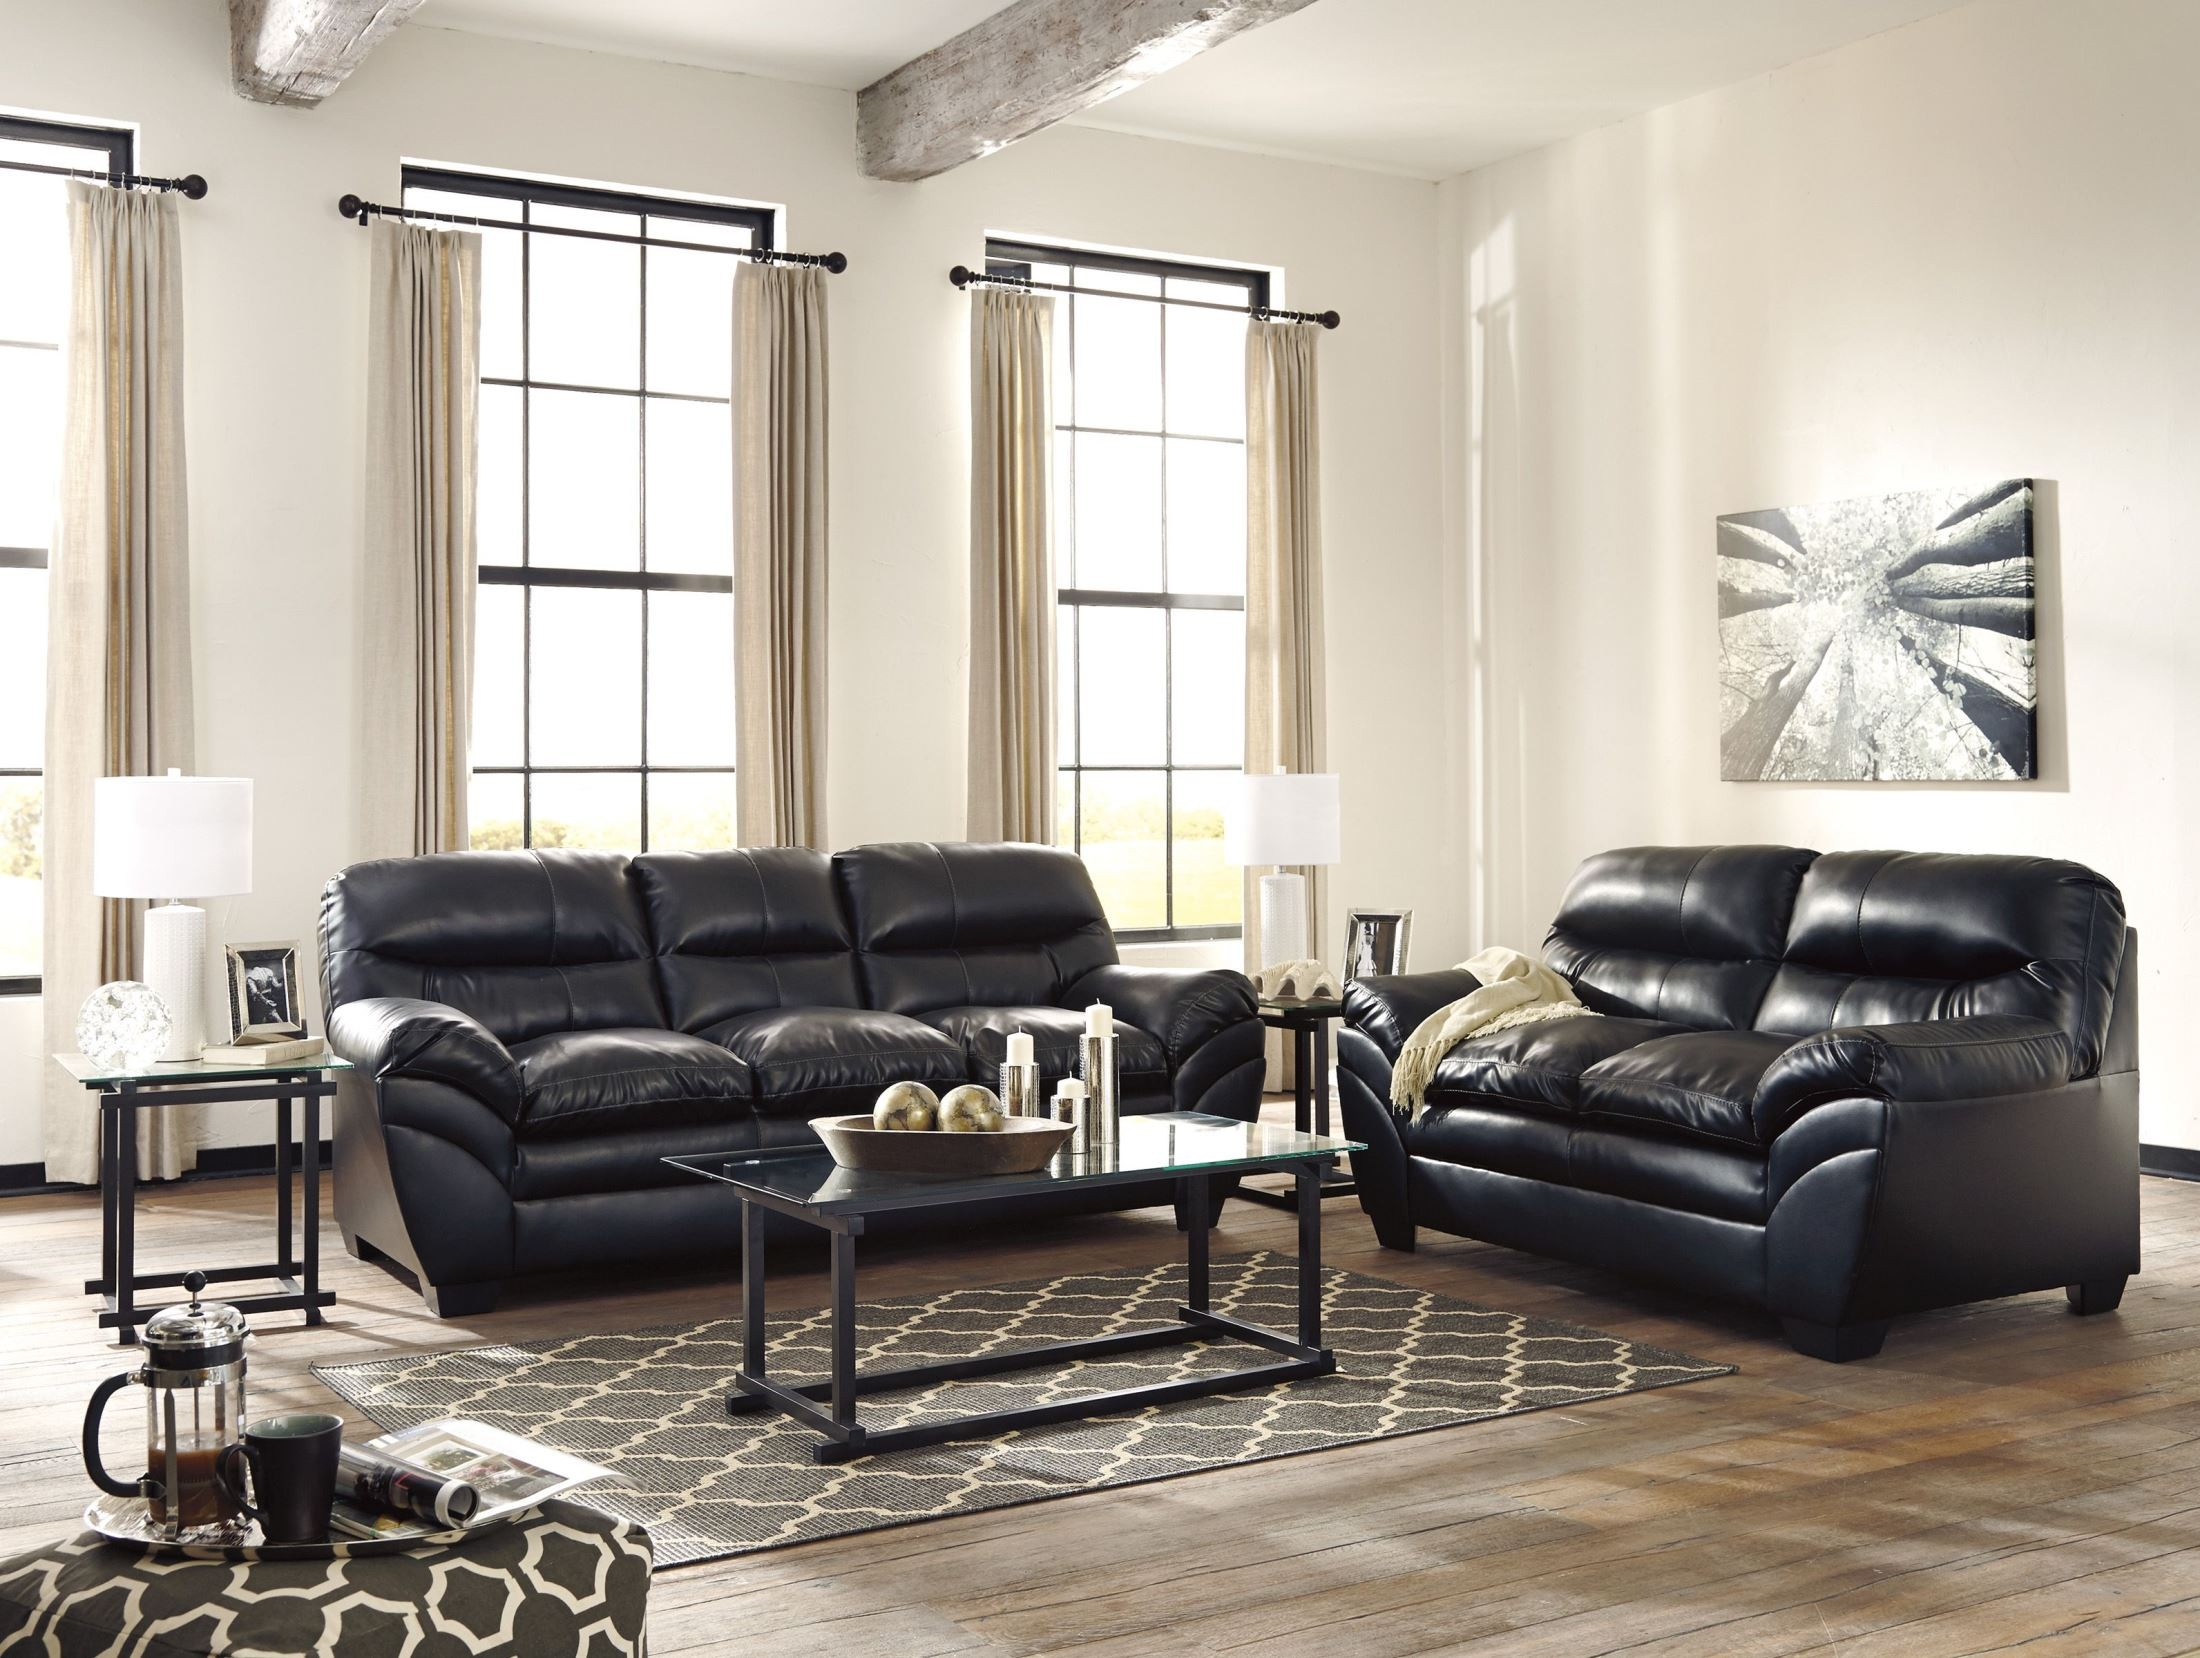 All Black Living Room Tassler Durablend Black Living Room Set From Ashley